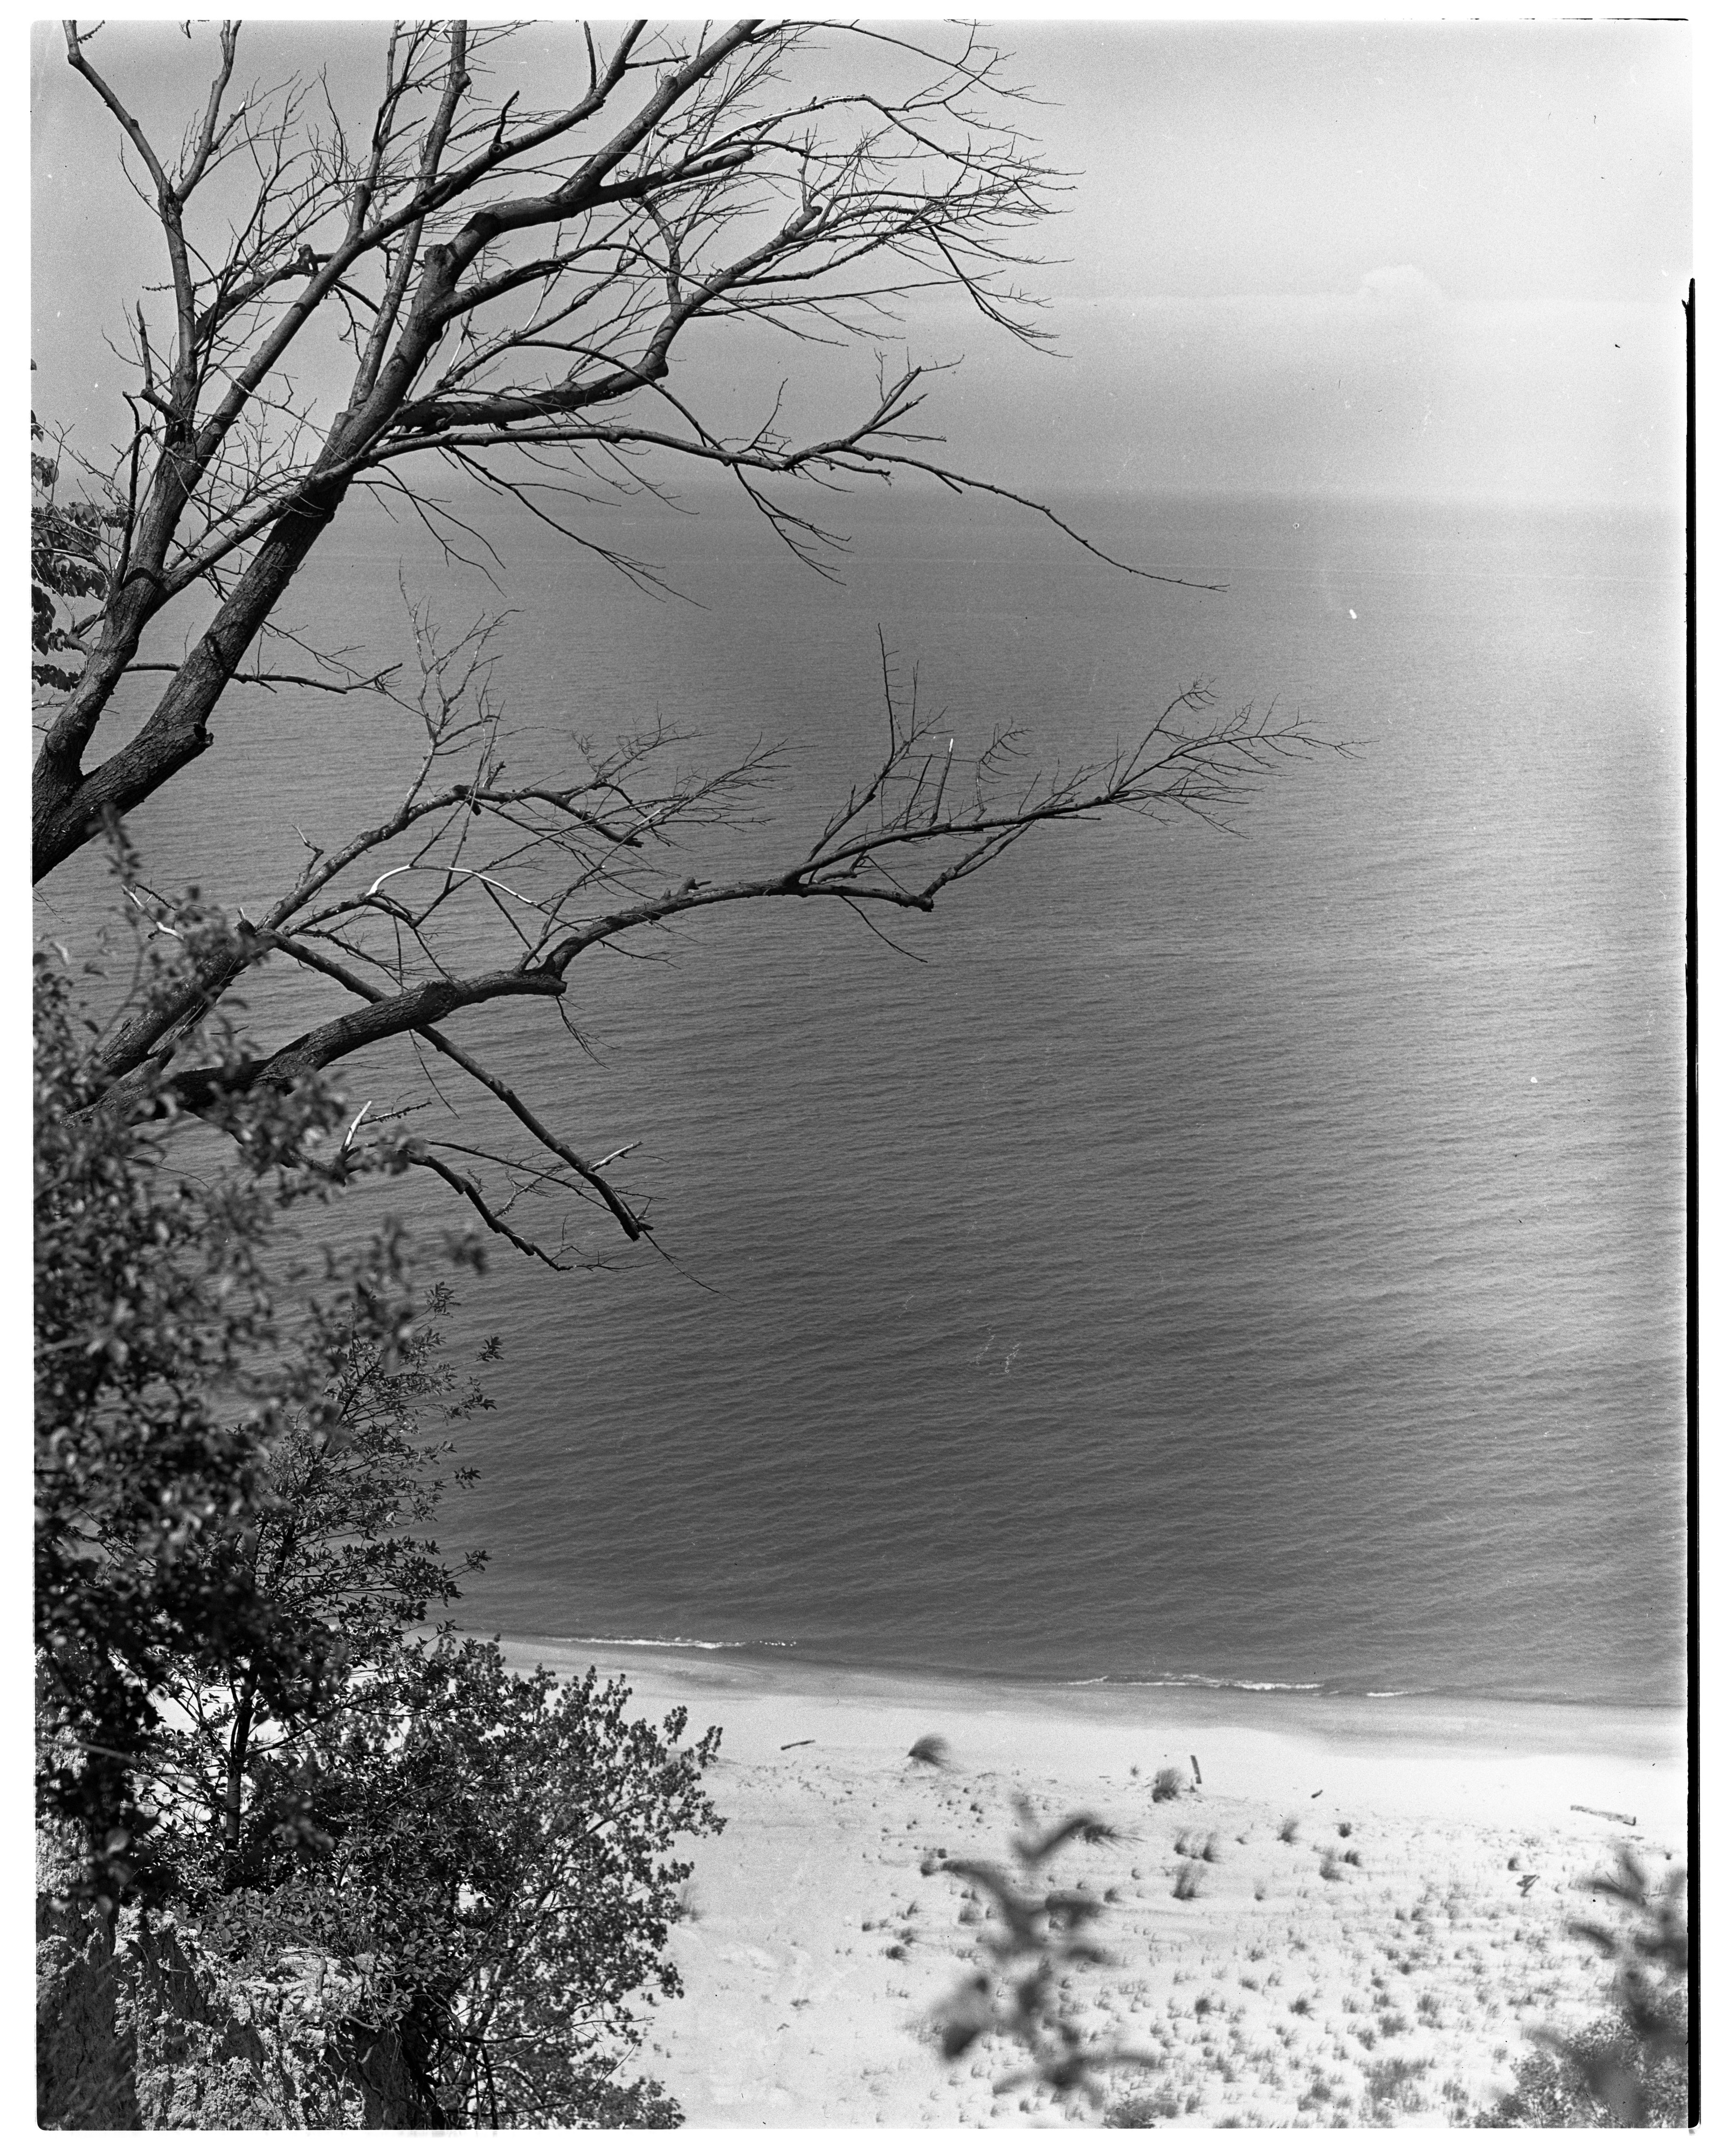 Lake Michigan Sand Dunes image